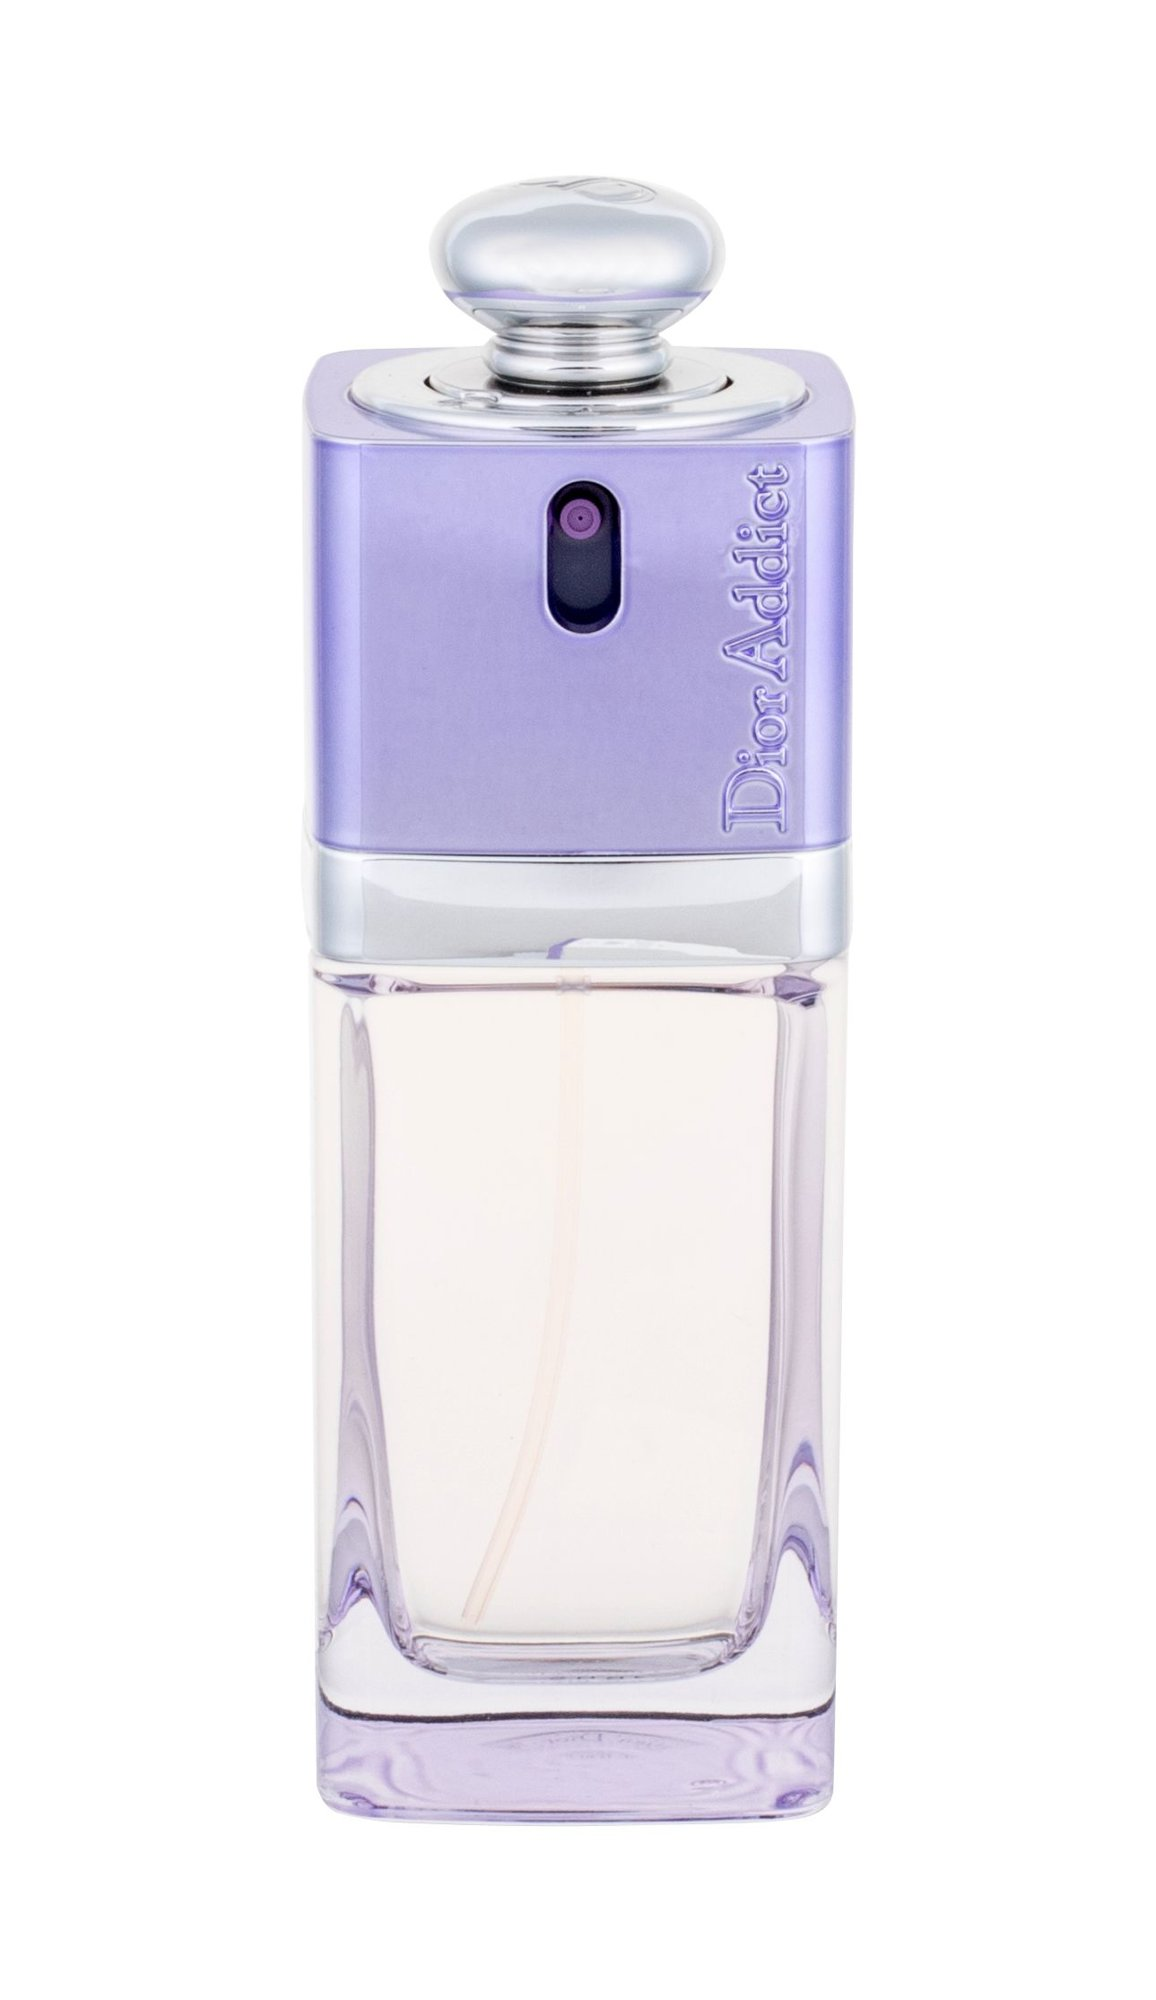 Christian Dior Addict Eau Sensuelle EDT 50ml